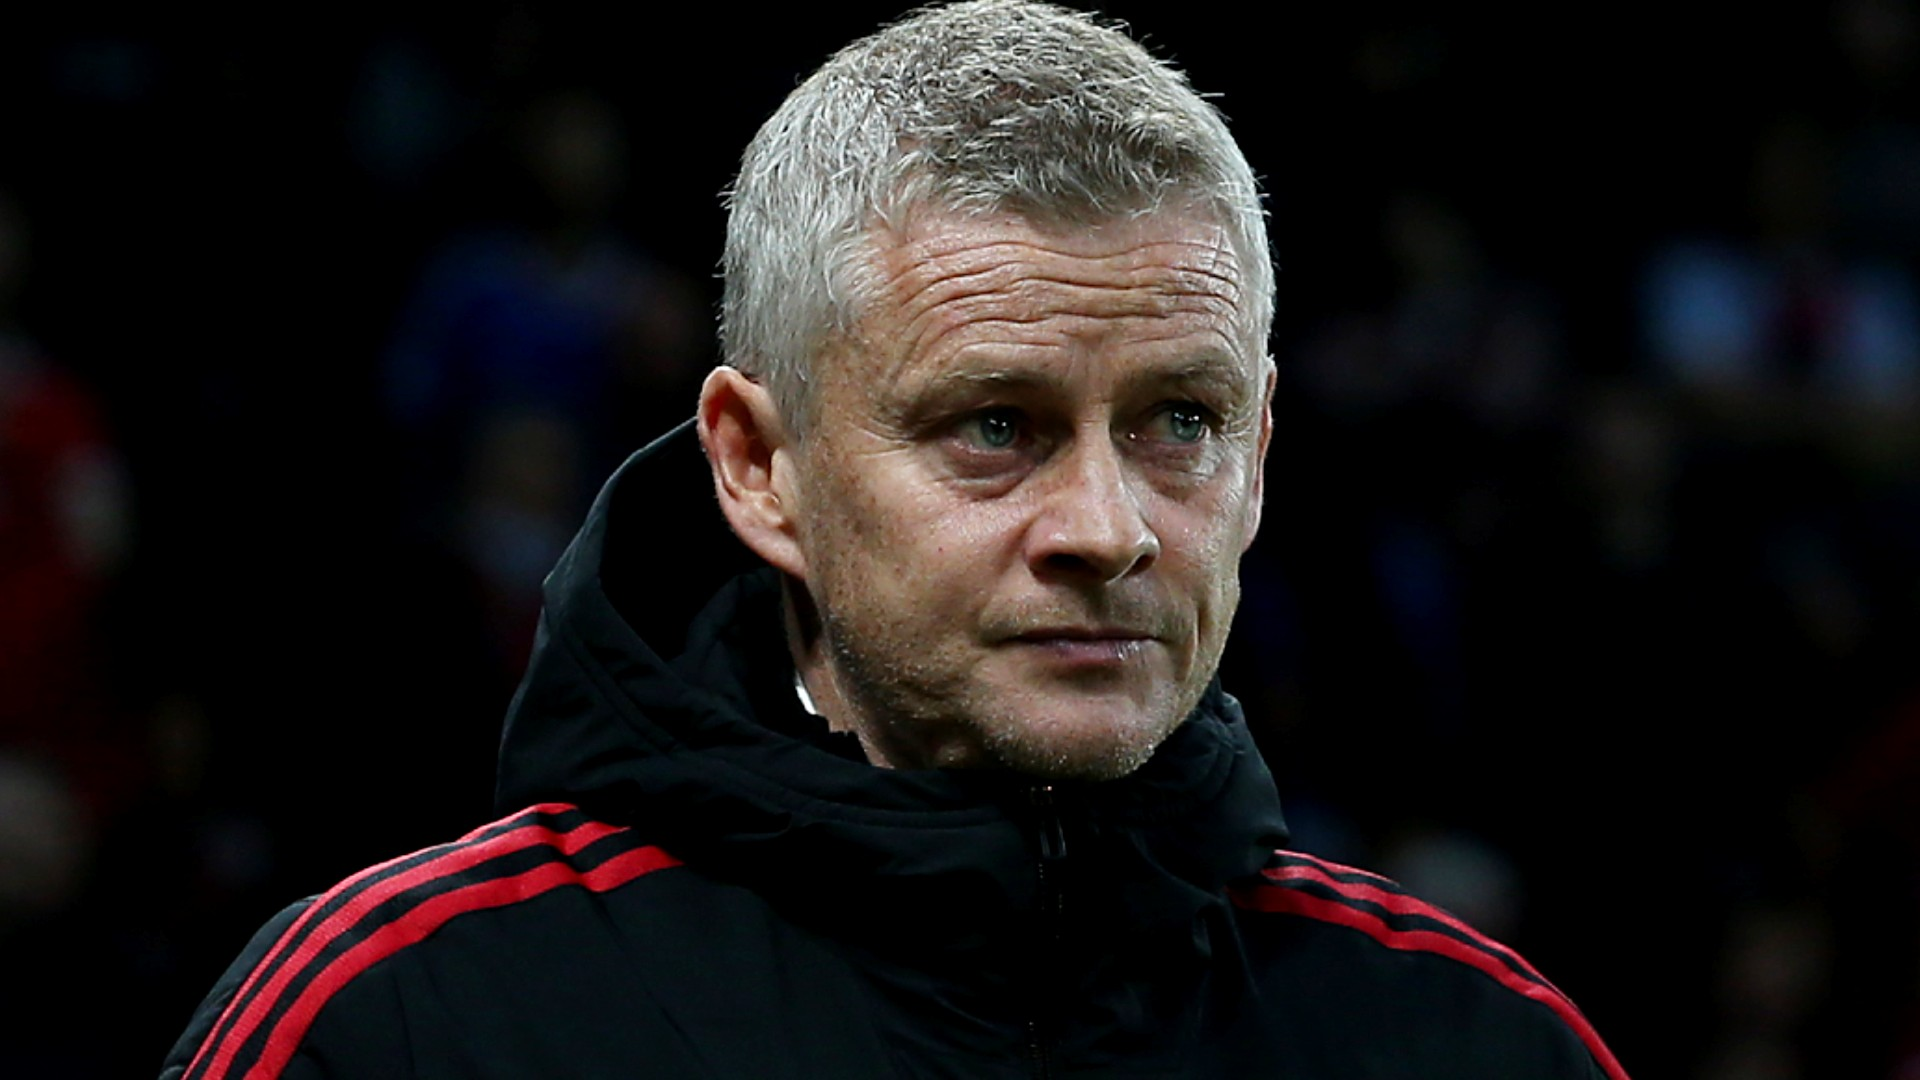 Will Manchester United fire Ole Gunnar Solskjær as manager?  Latest on rumors of potential firing